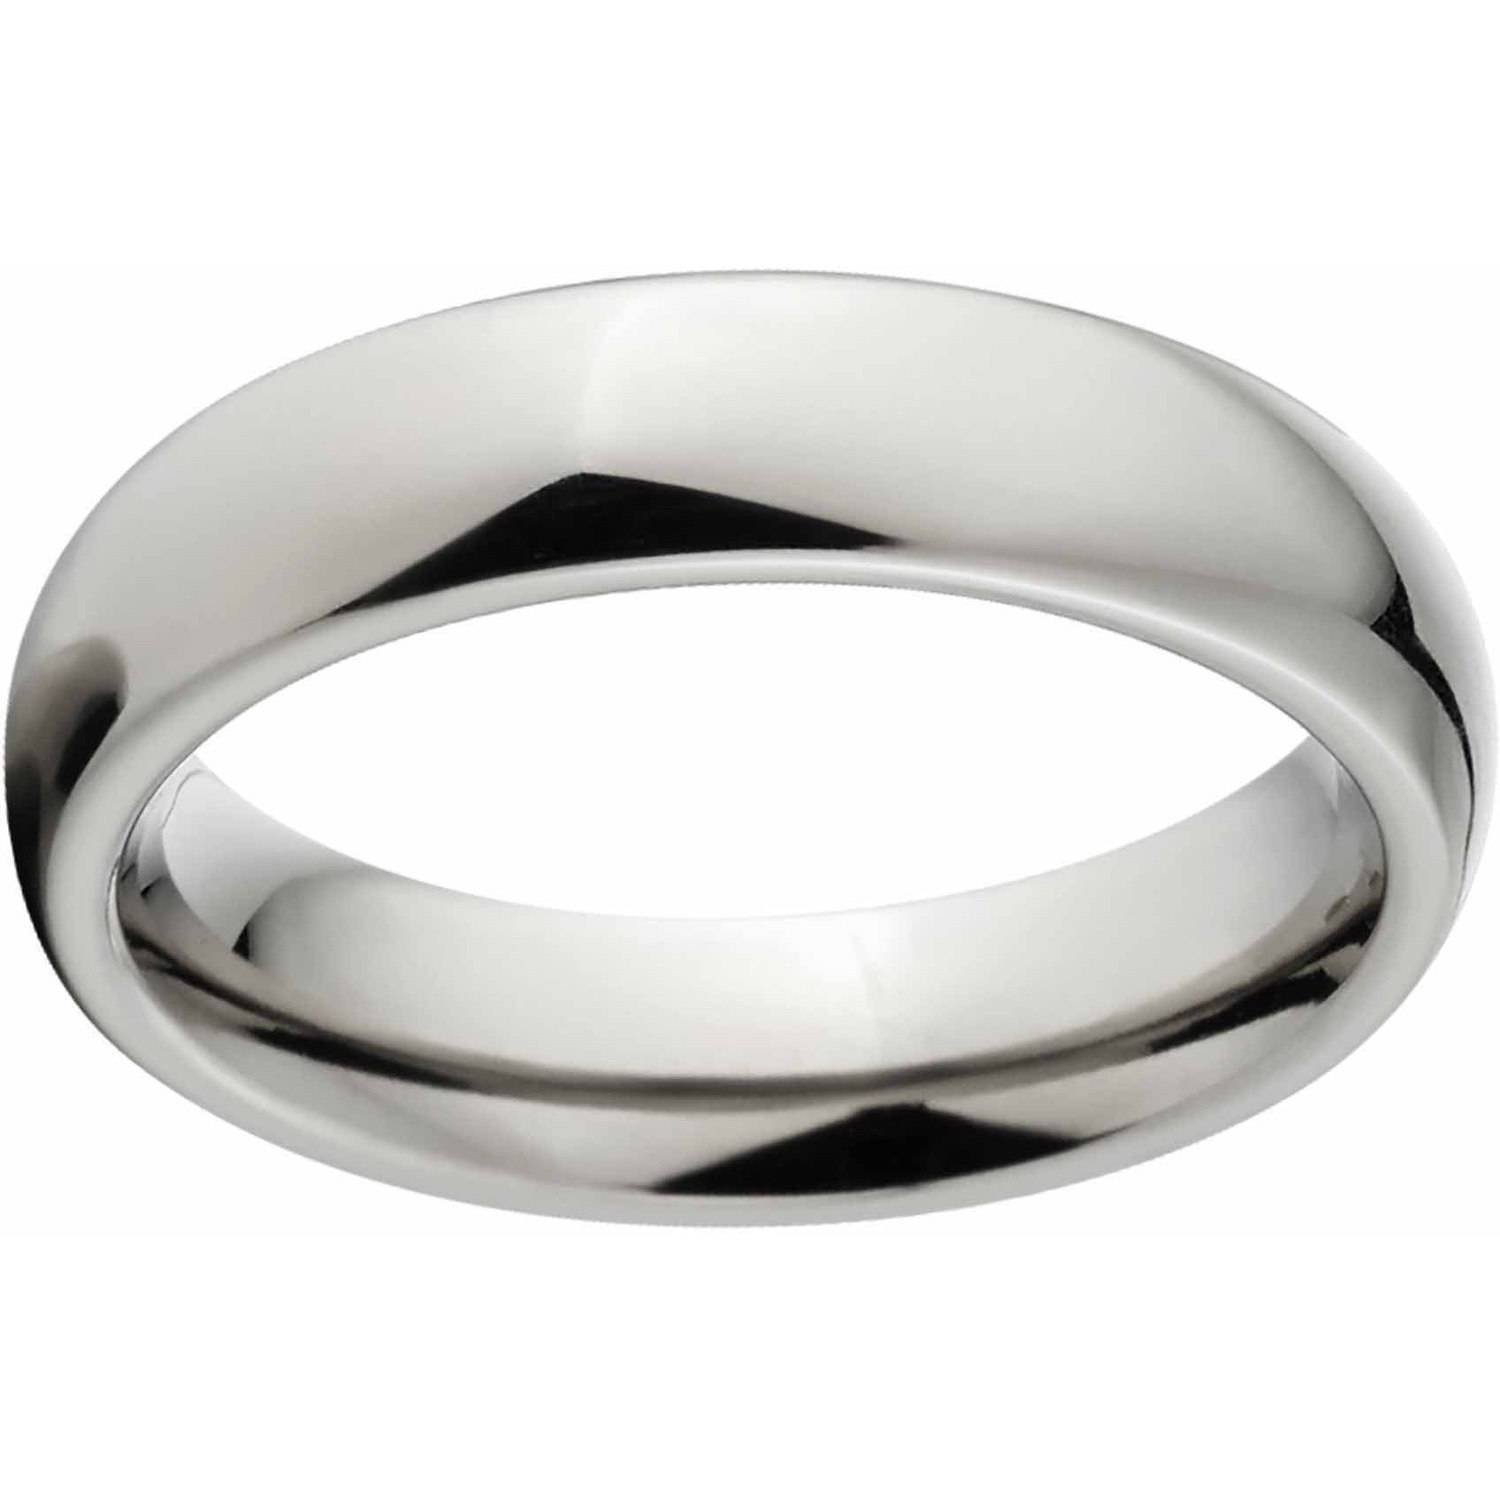 Polished 4Mm Titanium Wedding Band With Comfort Fit Design With Walmart Mens Engagement Rings (Gallery 10 of 15)